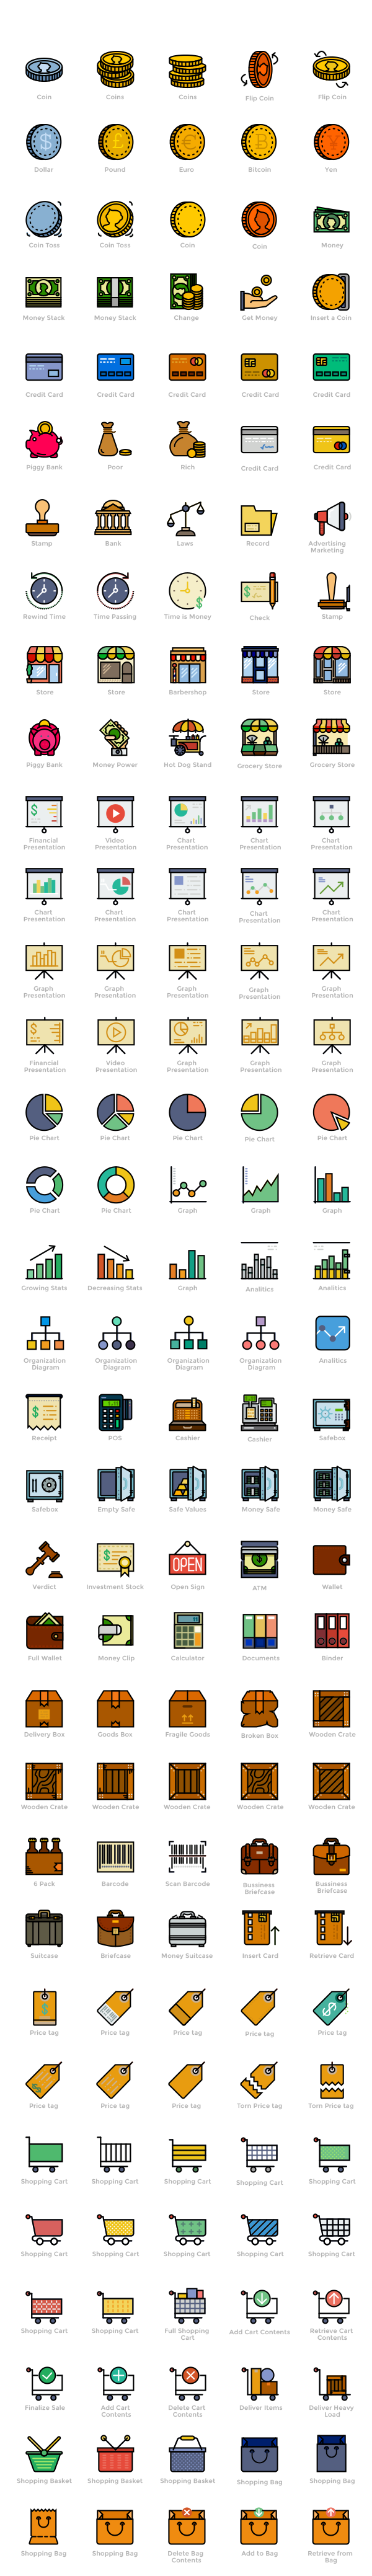 170 Free Retro Shopping, Finance & Business Icons -600